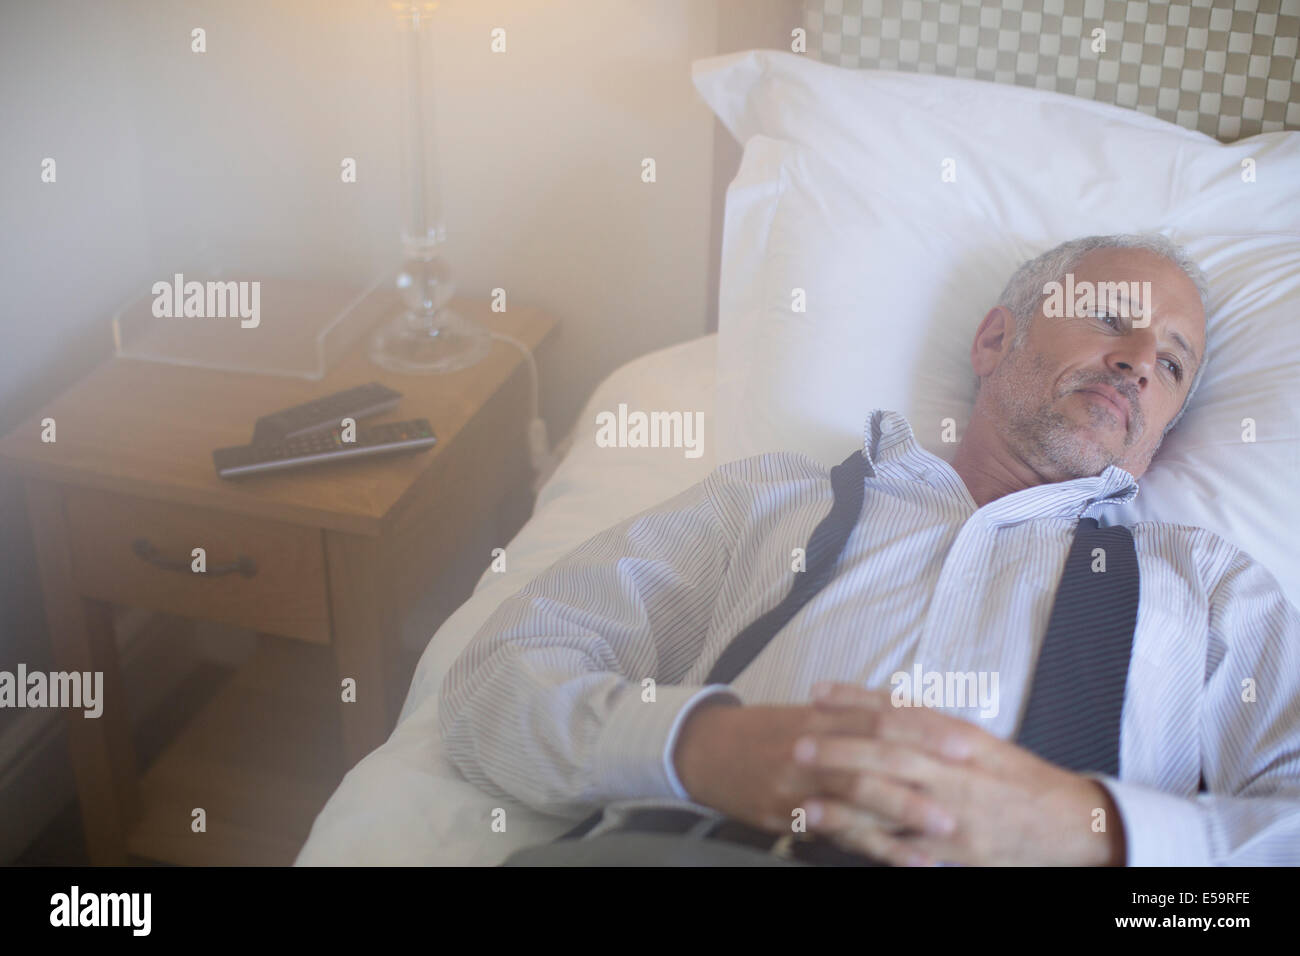 Businessman relaxing on bed in hotel room - Stock Image